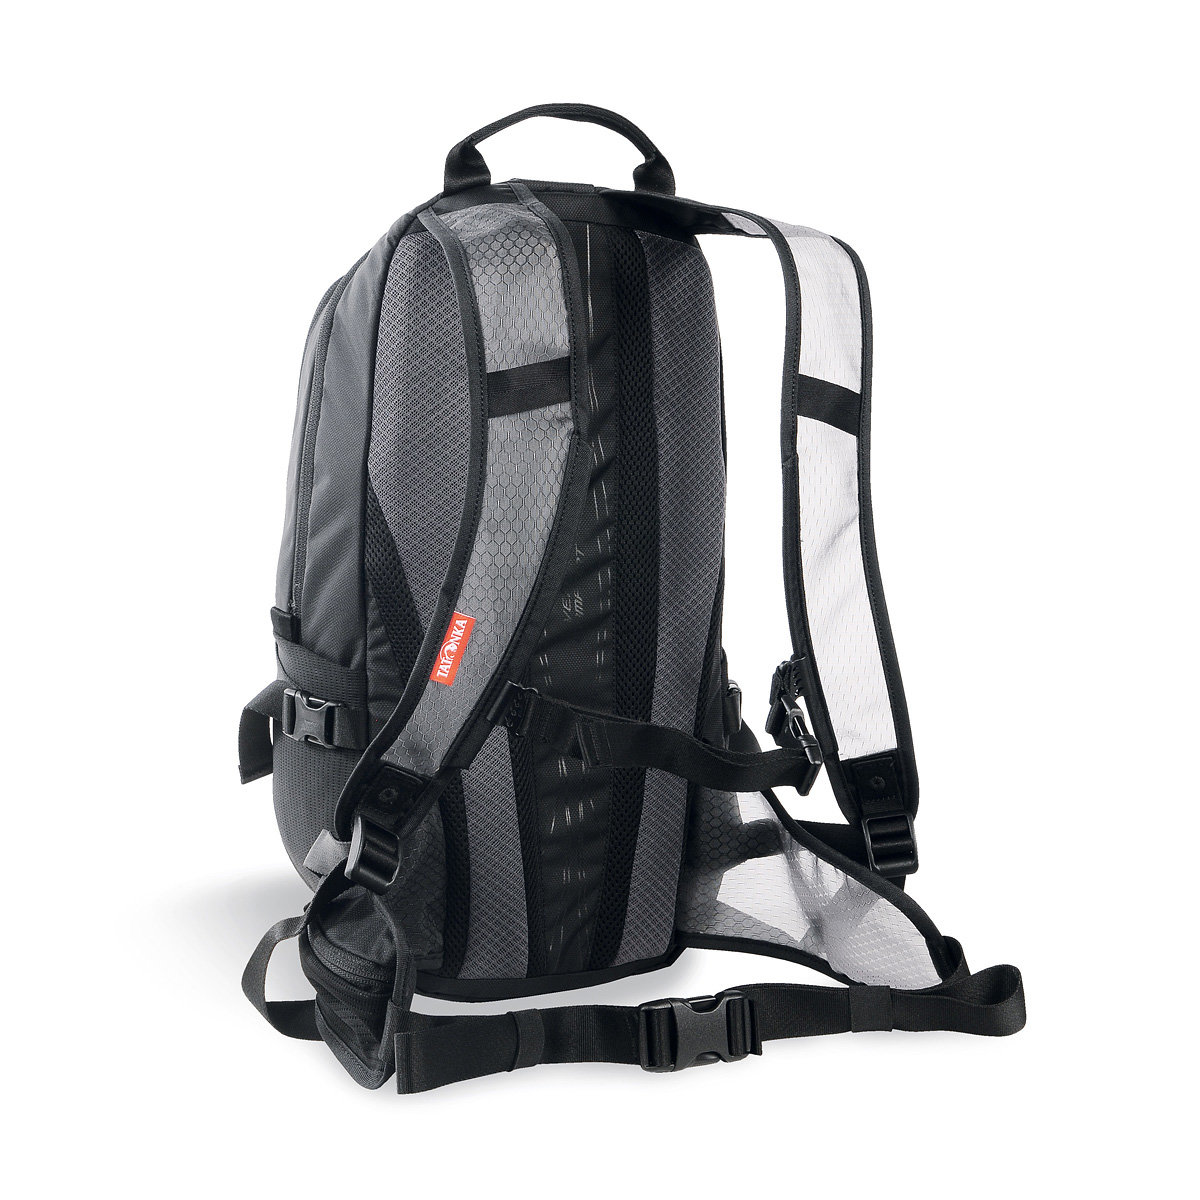 Рюкзак Tatonka Cycle pack 18 (Titan Grey) Cycle pack 18 2 TAT 1526.021